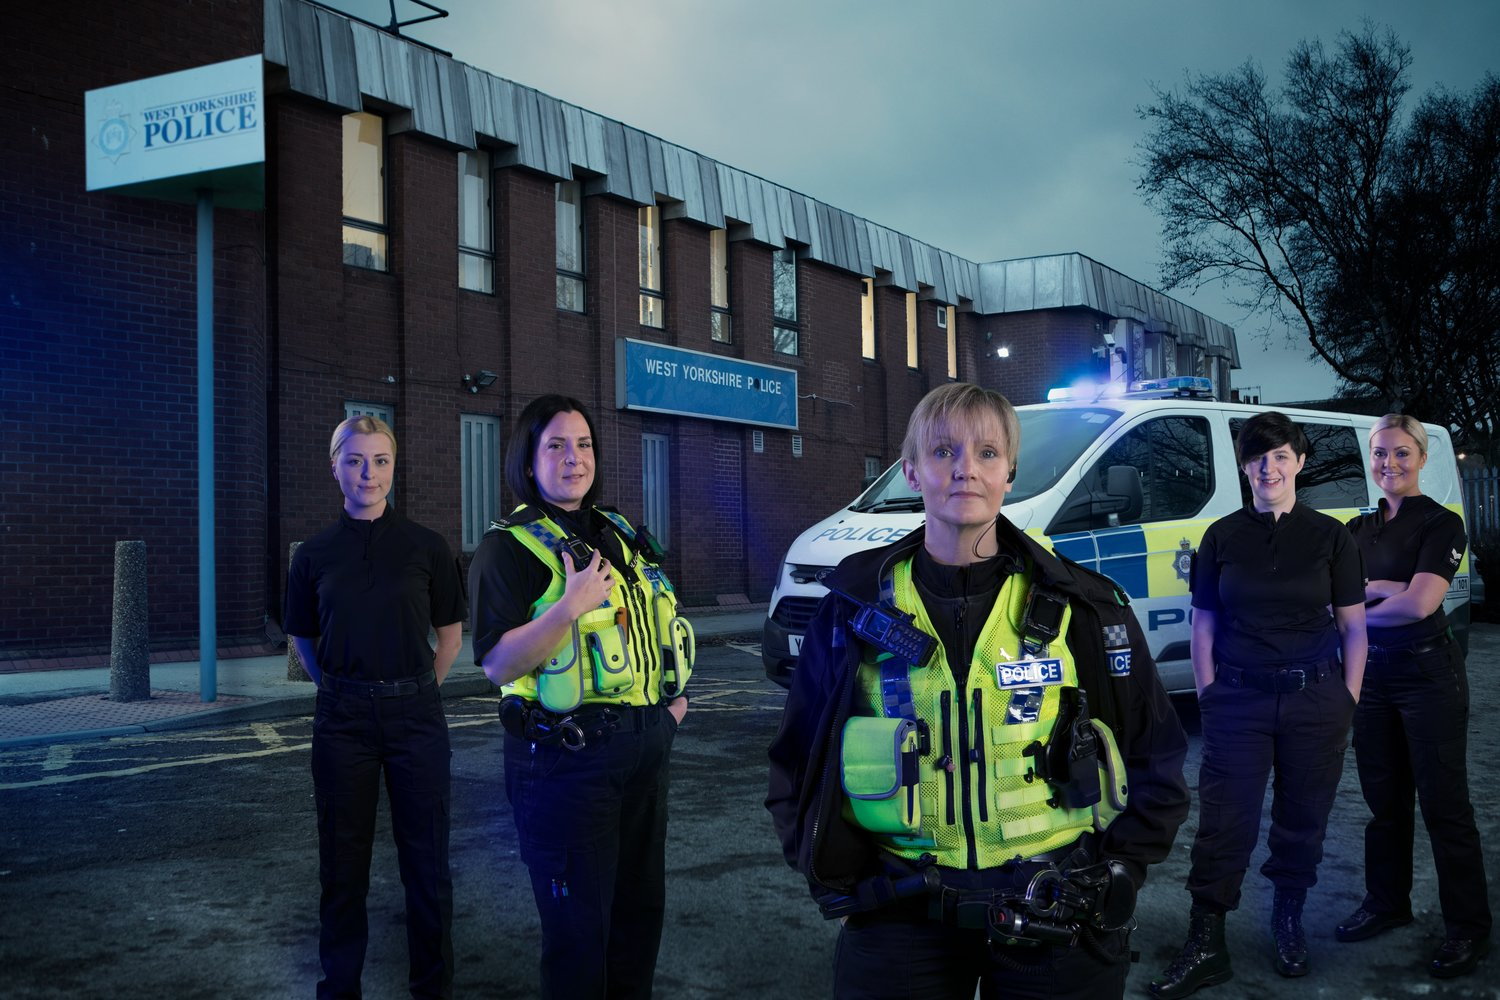 Inspiring Women in West Yorkshire Police Force are Focus of UKTV